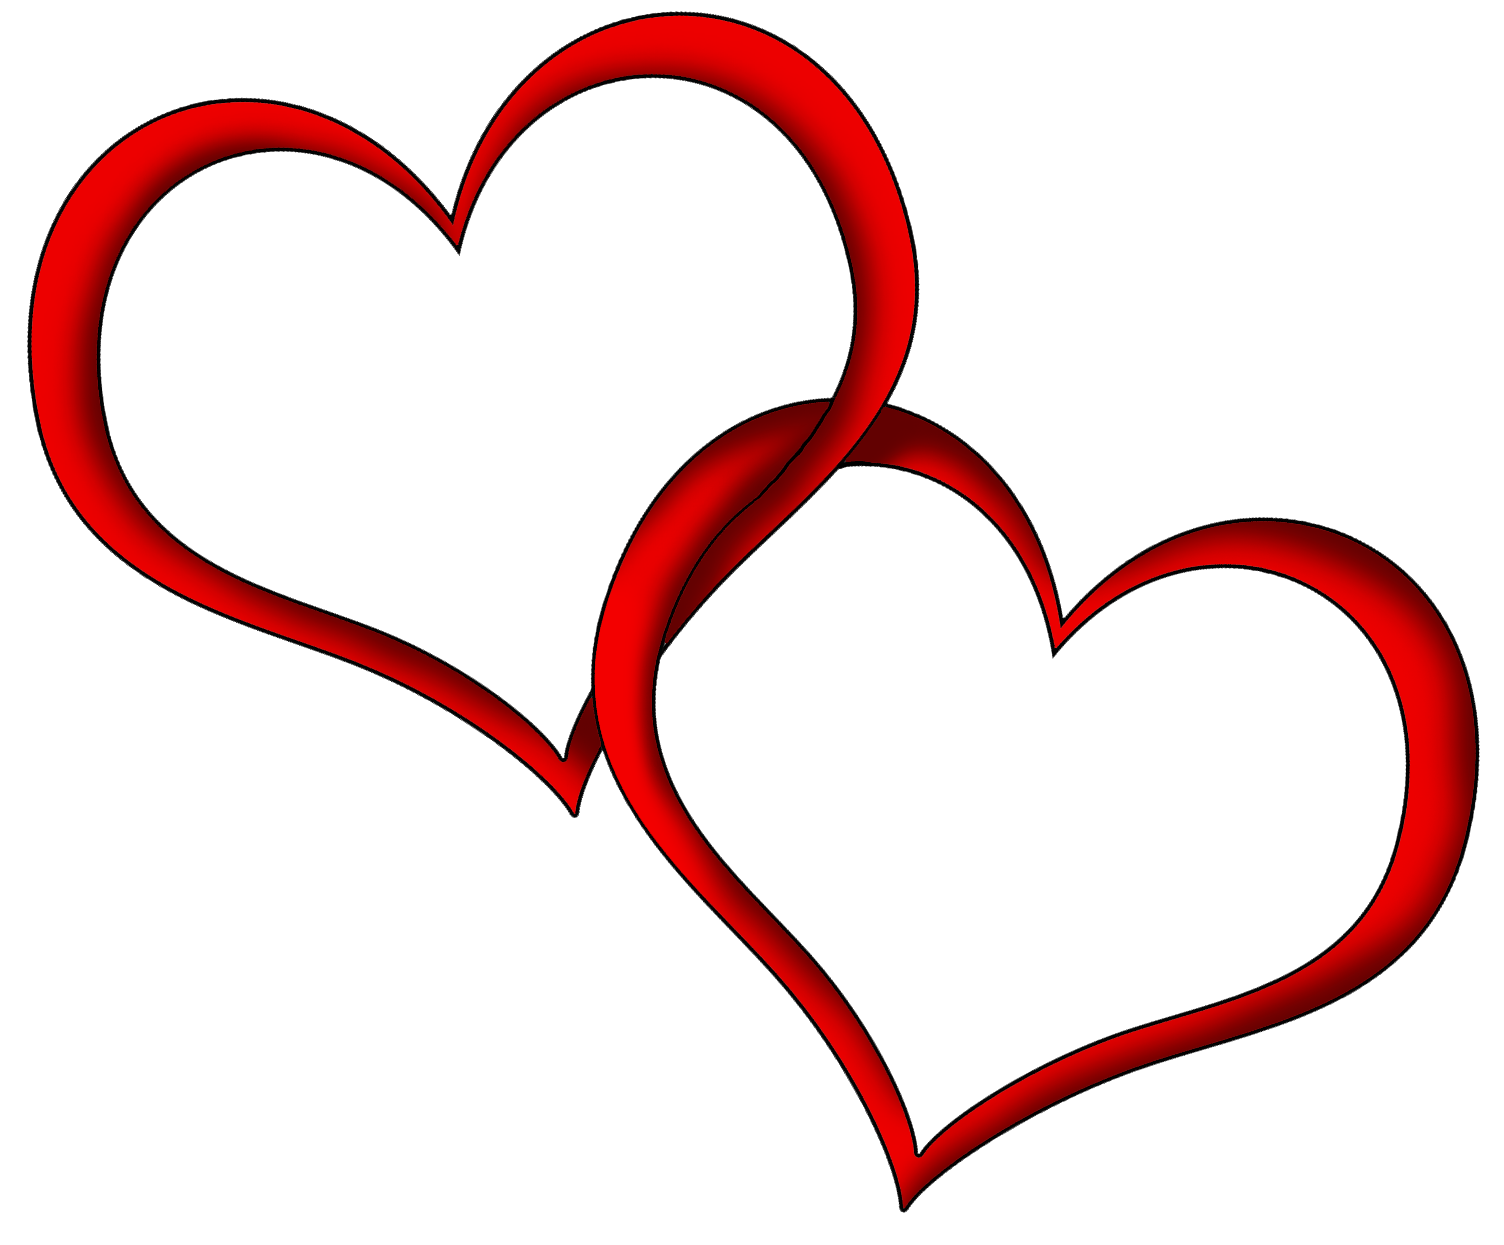 Transparent Red Hearts Png Clipart Picture Love Heart Images Heart Clip Art Heart Images